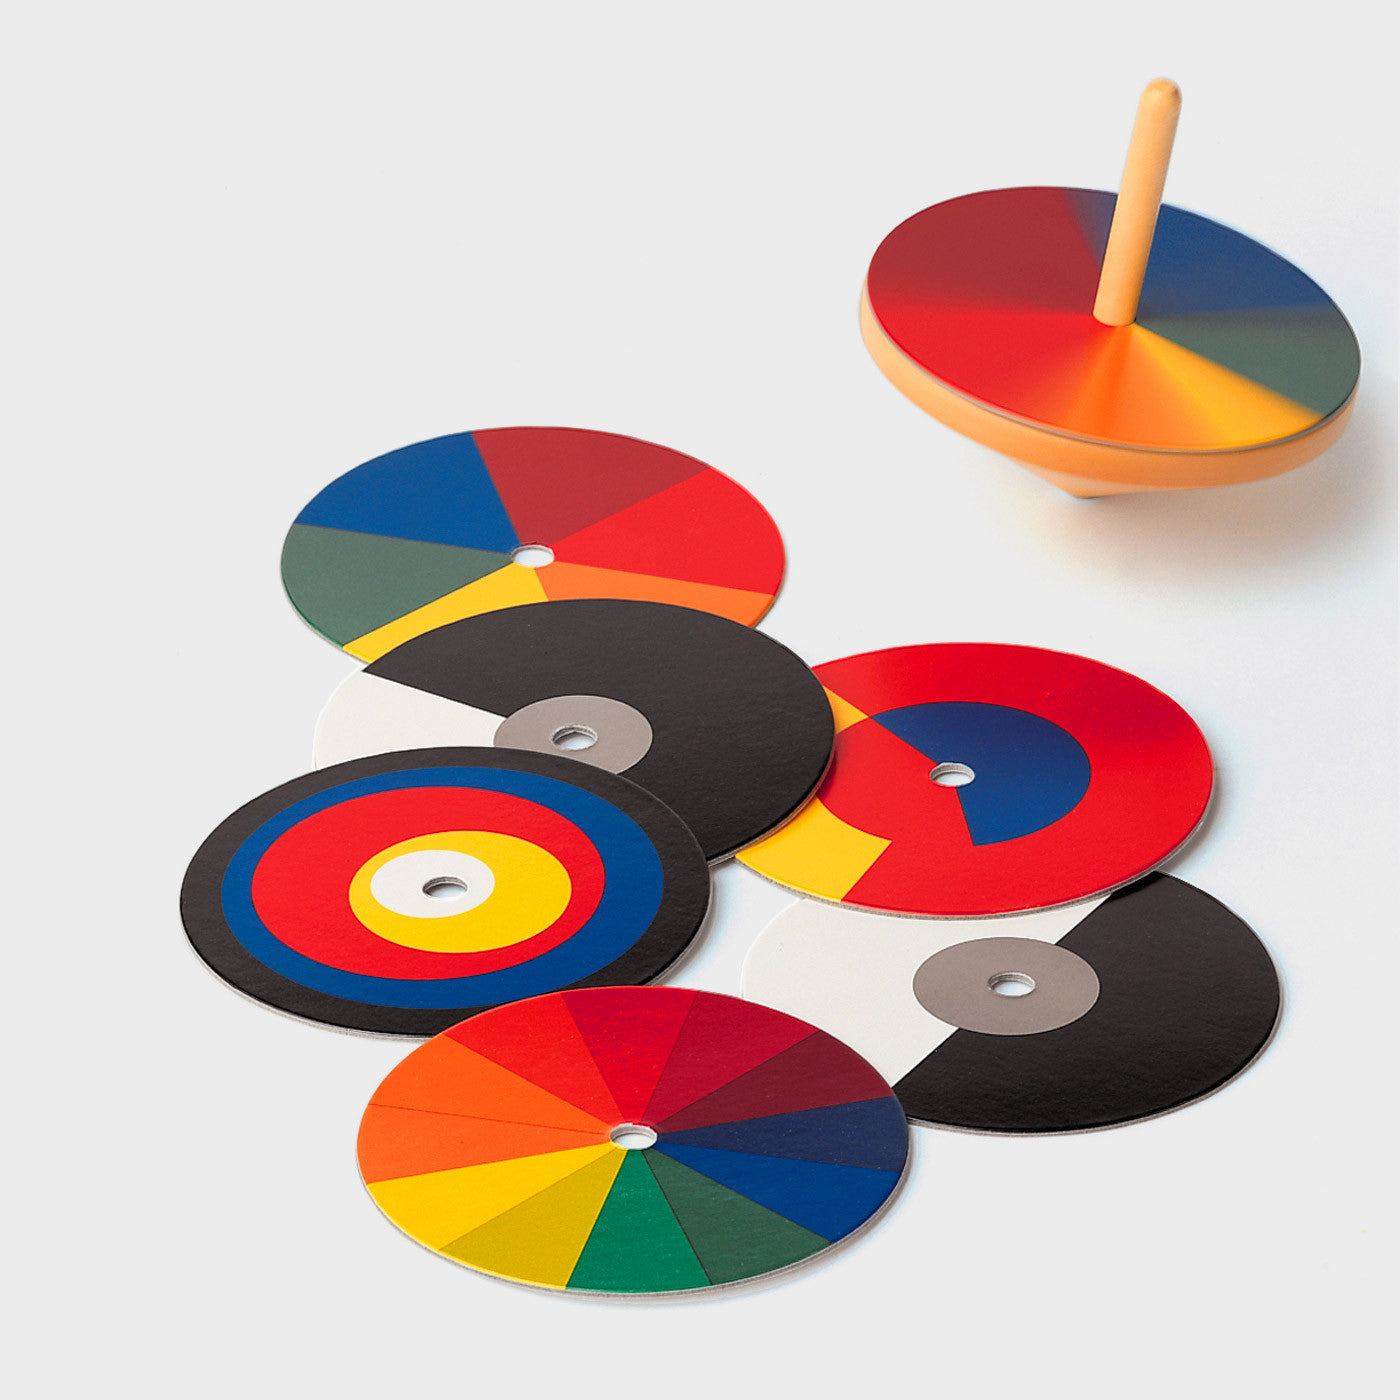 "This classic wooden Spinning Top or ""Optischer Farbmischer"" is designed by Ludwig Hirschfeld-Mack at Bauhaus in the 1920s."